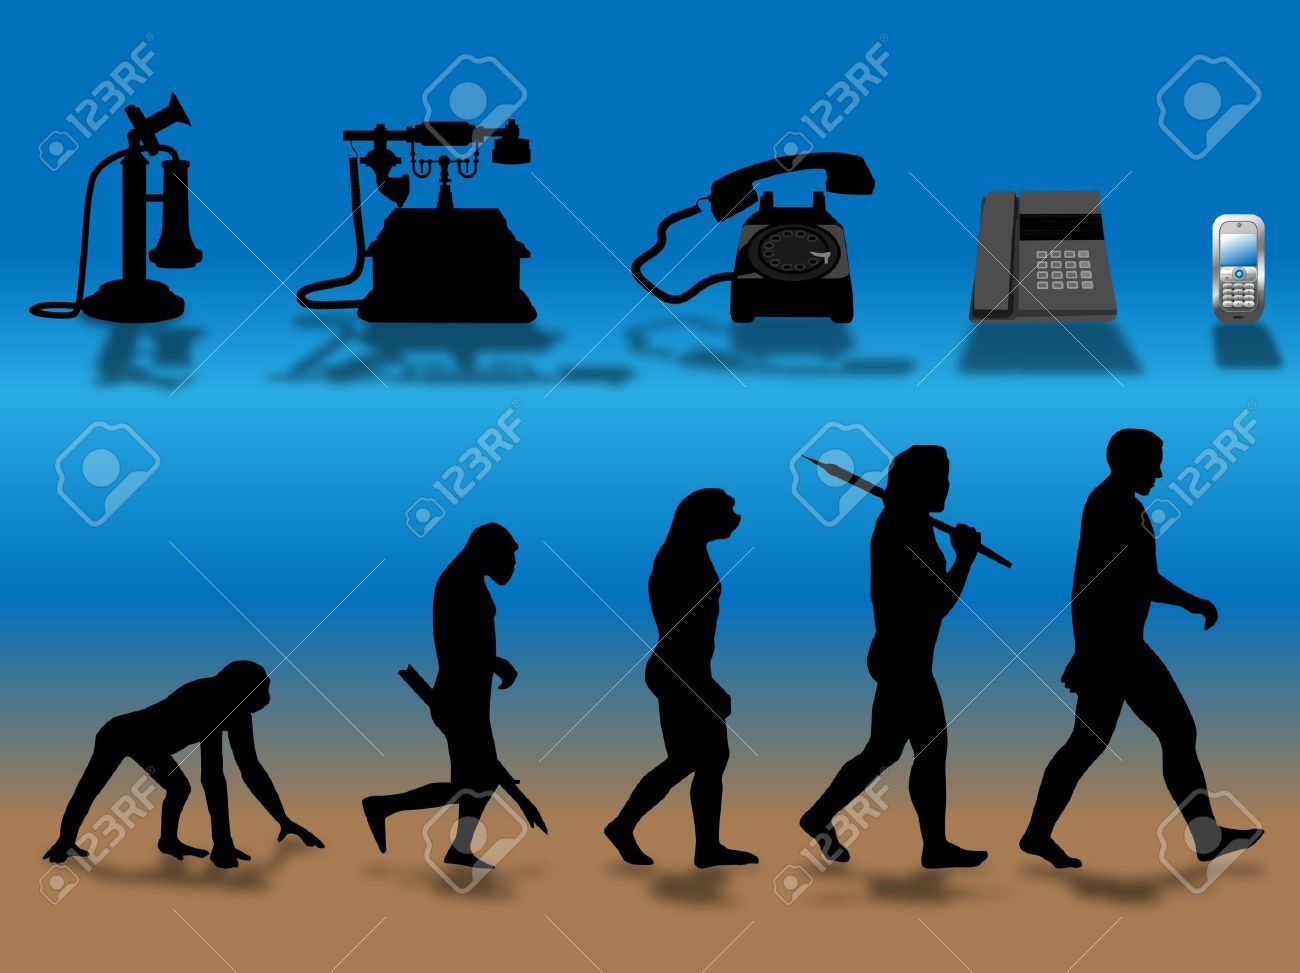 comparing human and phone evolution Stock Photo - 6254543